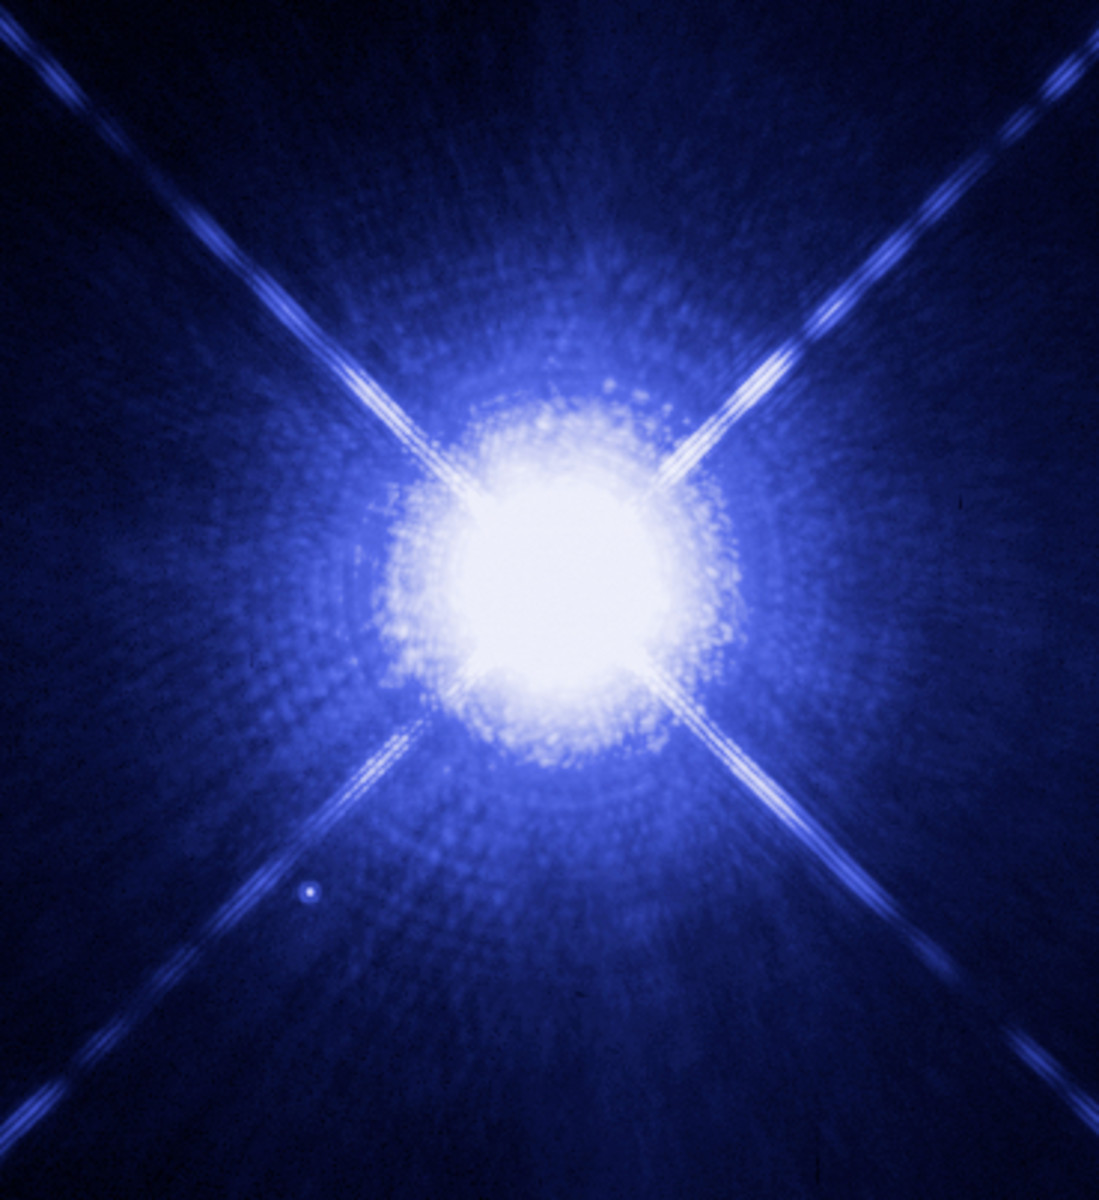 Sirius A is in the Canis Major constellation and is called The Great Dog. Sirius B, the white dwarf is referred to as The Pup, which shows as a tiny white dot, lower left.